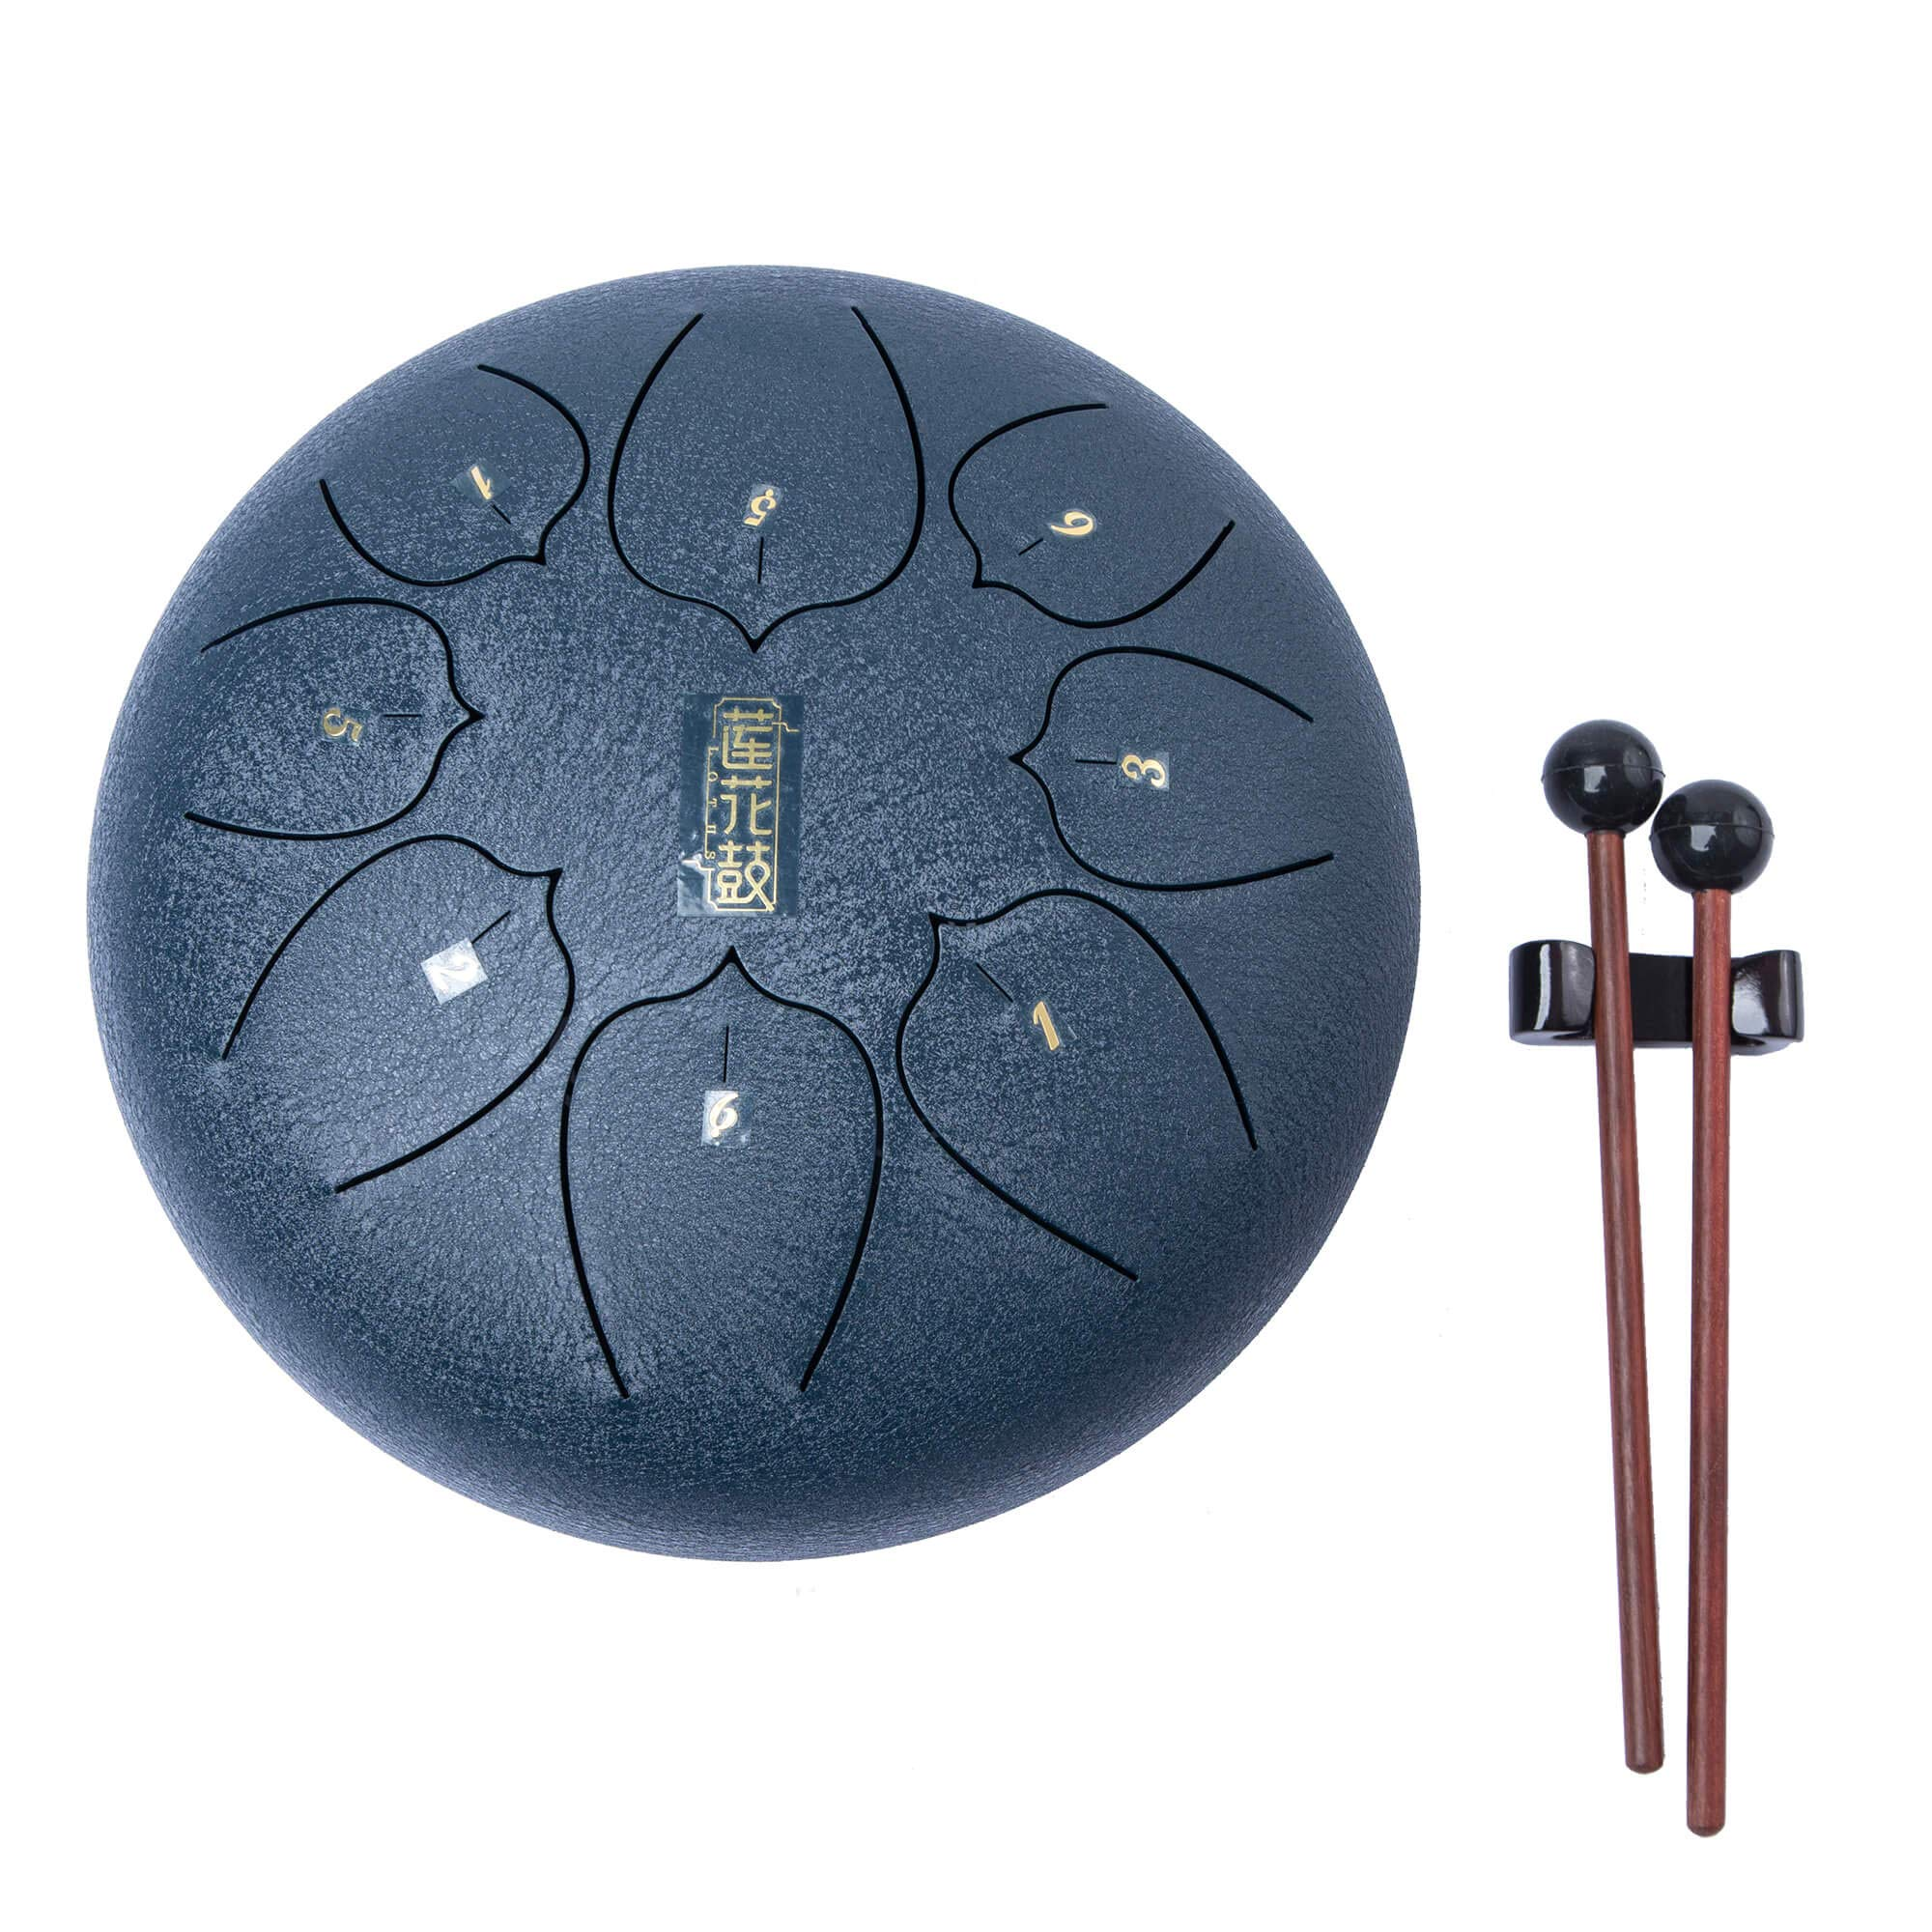 Handpan Tongue Drum 8 Notes 8 Inches Chakra Tank Drum Steel Percussion Hang Drum Instrument with Padded Travel Bag and Mallets Blue (8) by sz